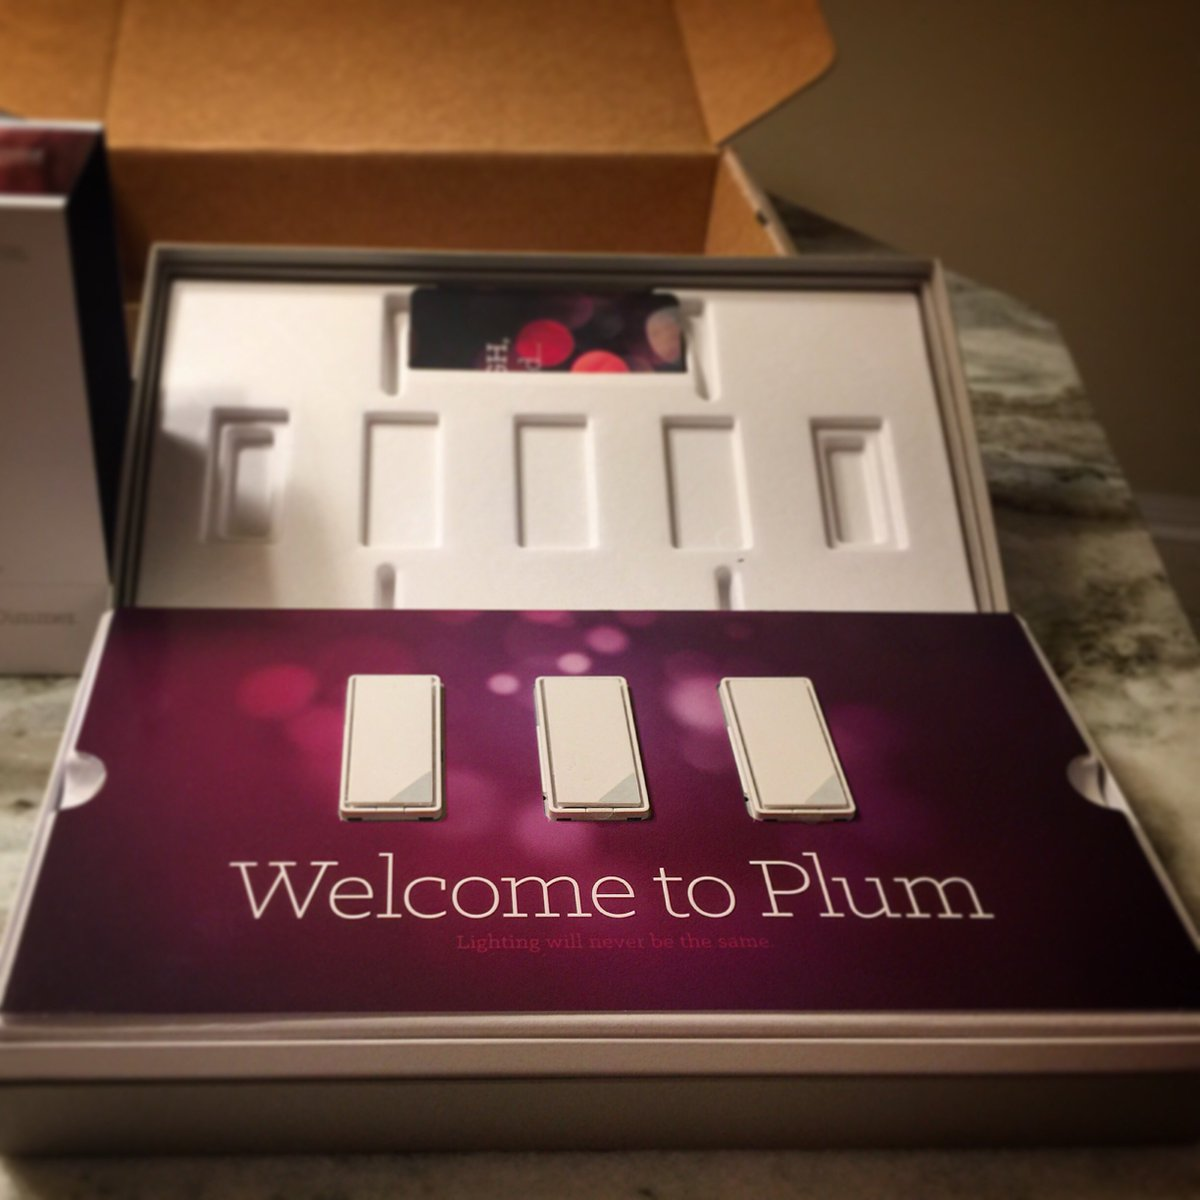 Just Received My #Plum Smart Light Switches And Iu0027m Excited!  Https://t.co/fO3GxocREr Https://t.co/0HPMrv1XYB